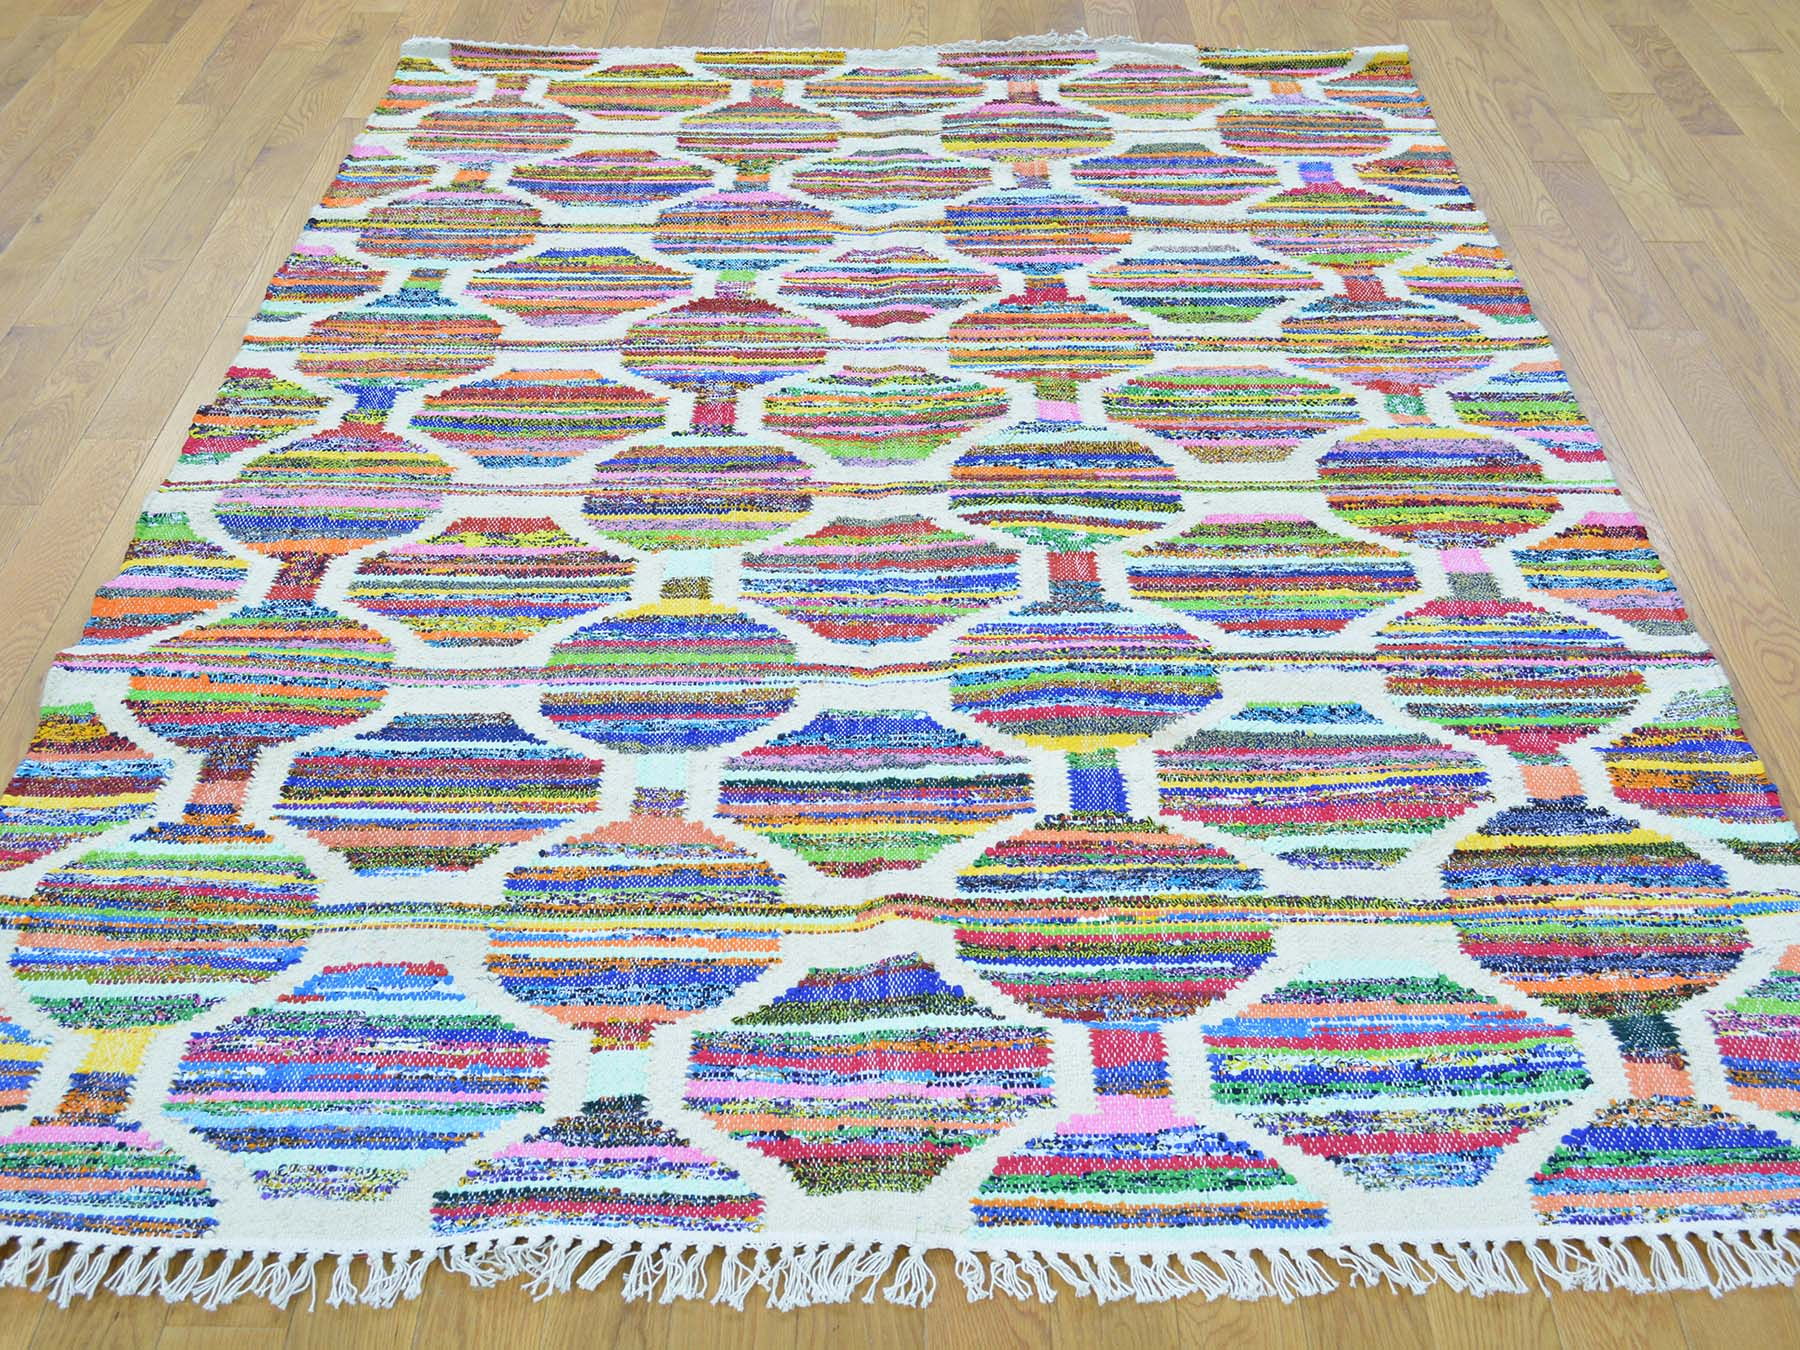 5-x7- Geometric Flat Weave Kilim Cotton And Sari Silk Hand Woven Rug